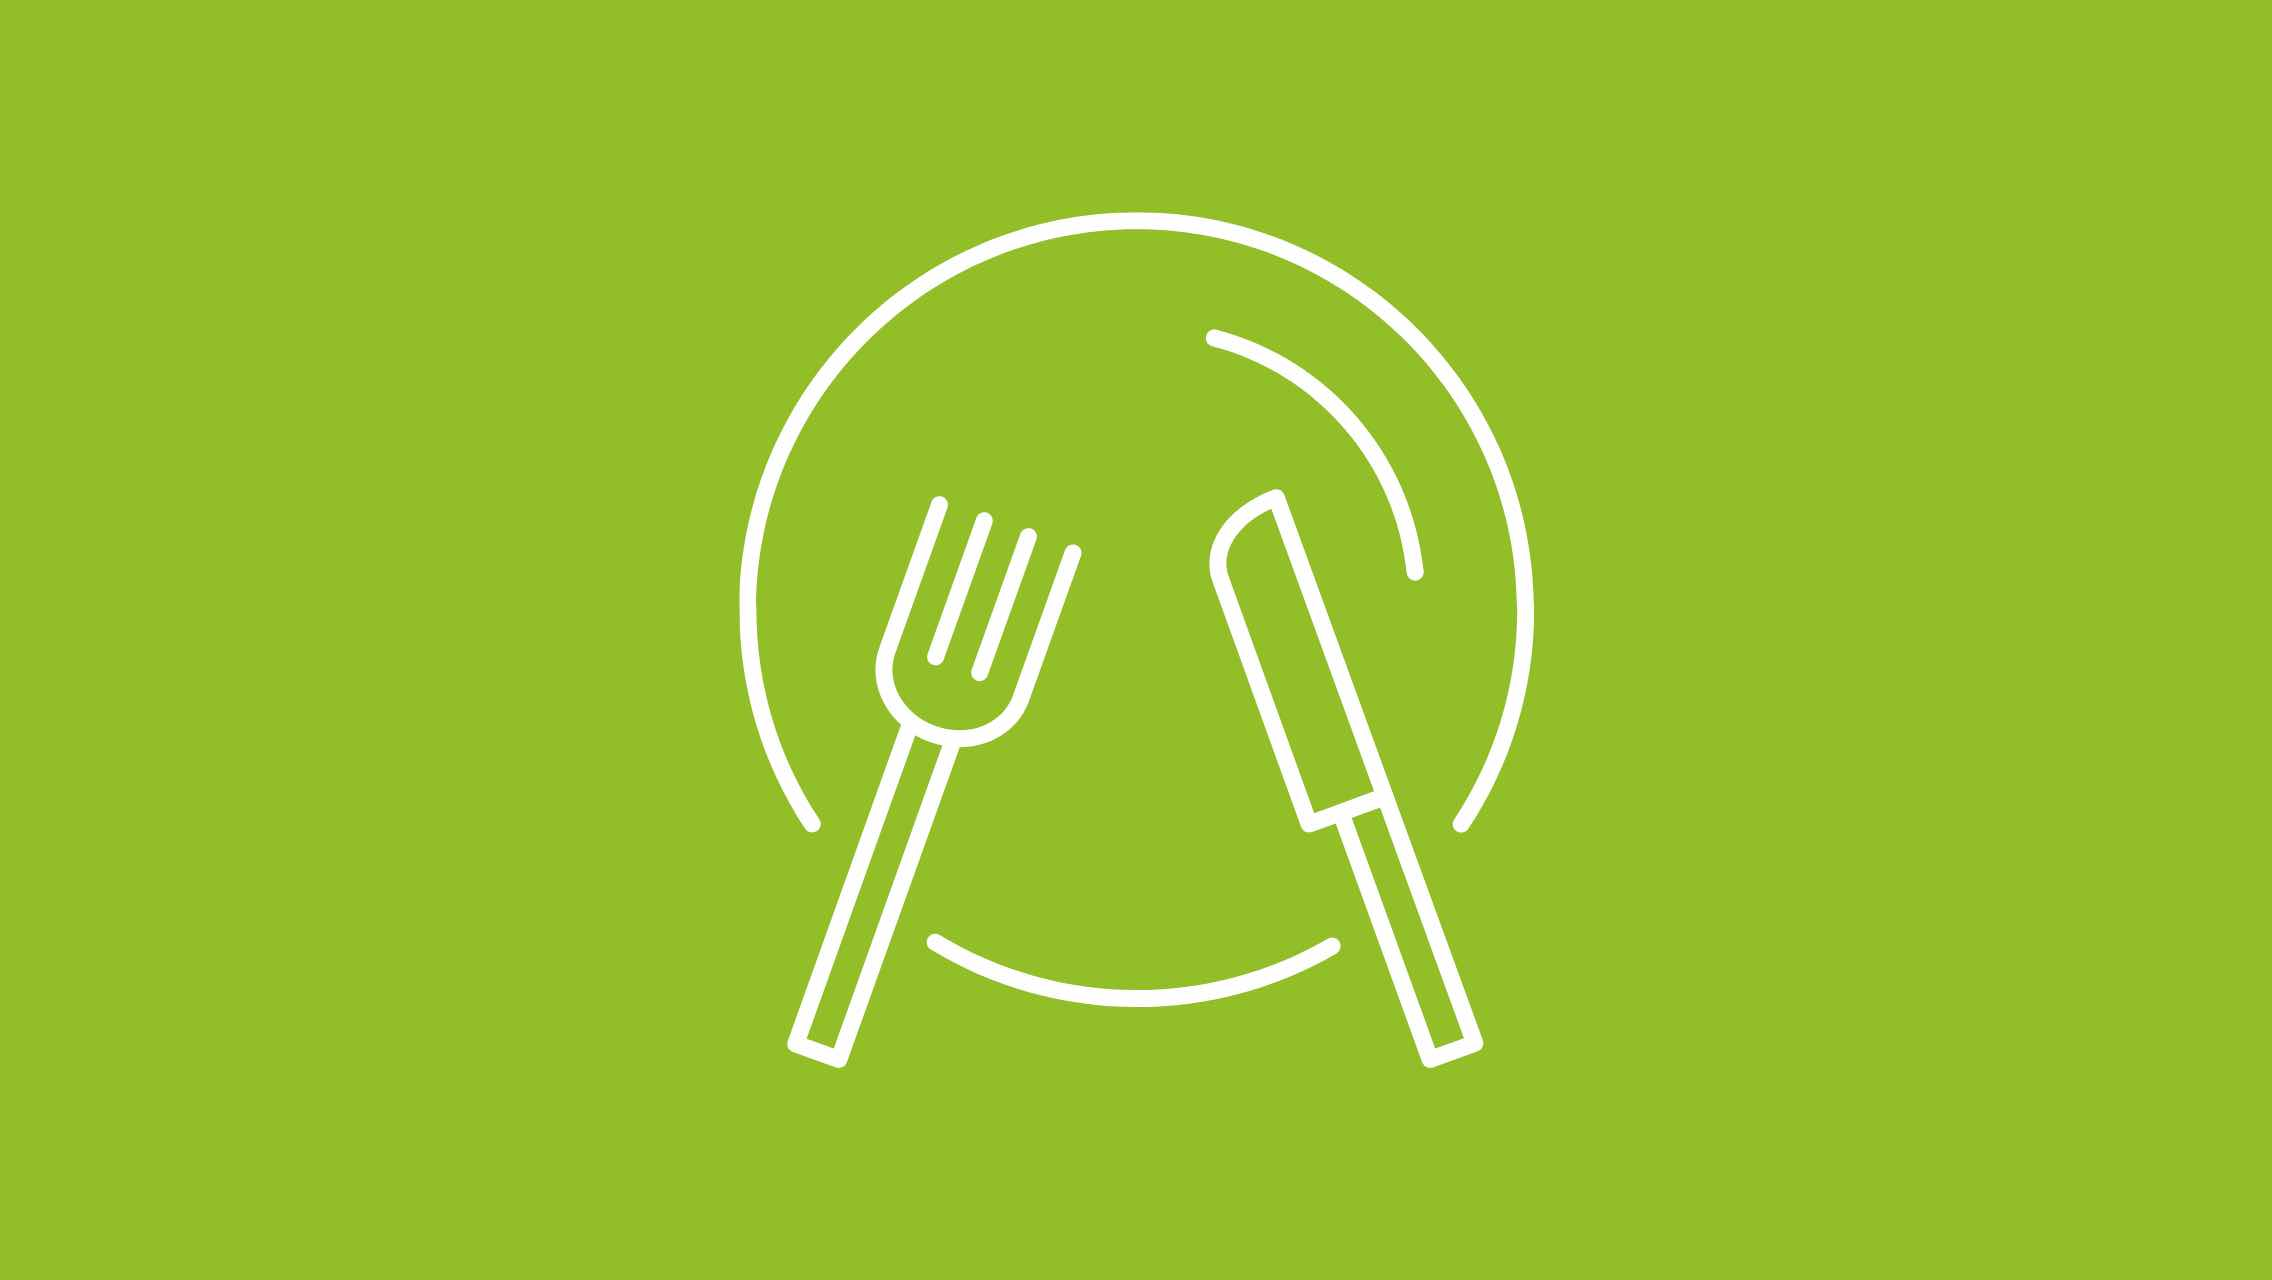 An illustration of a plate, fork and knife on a green background.